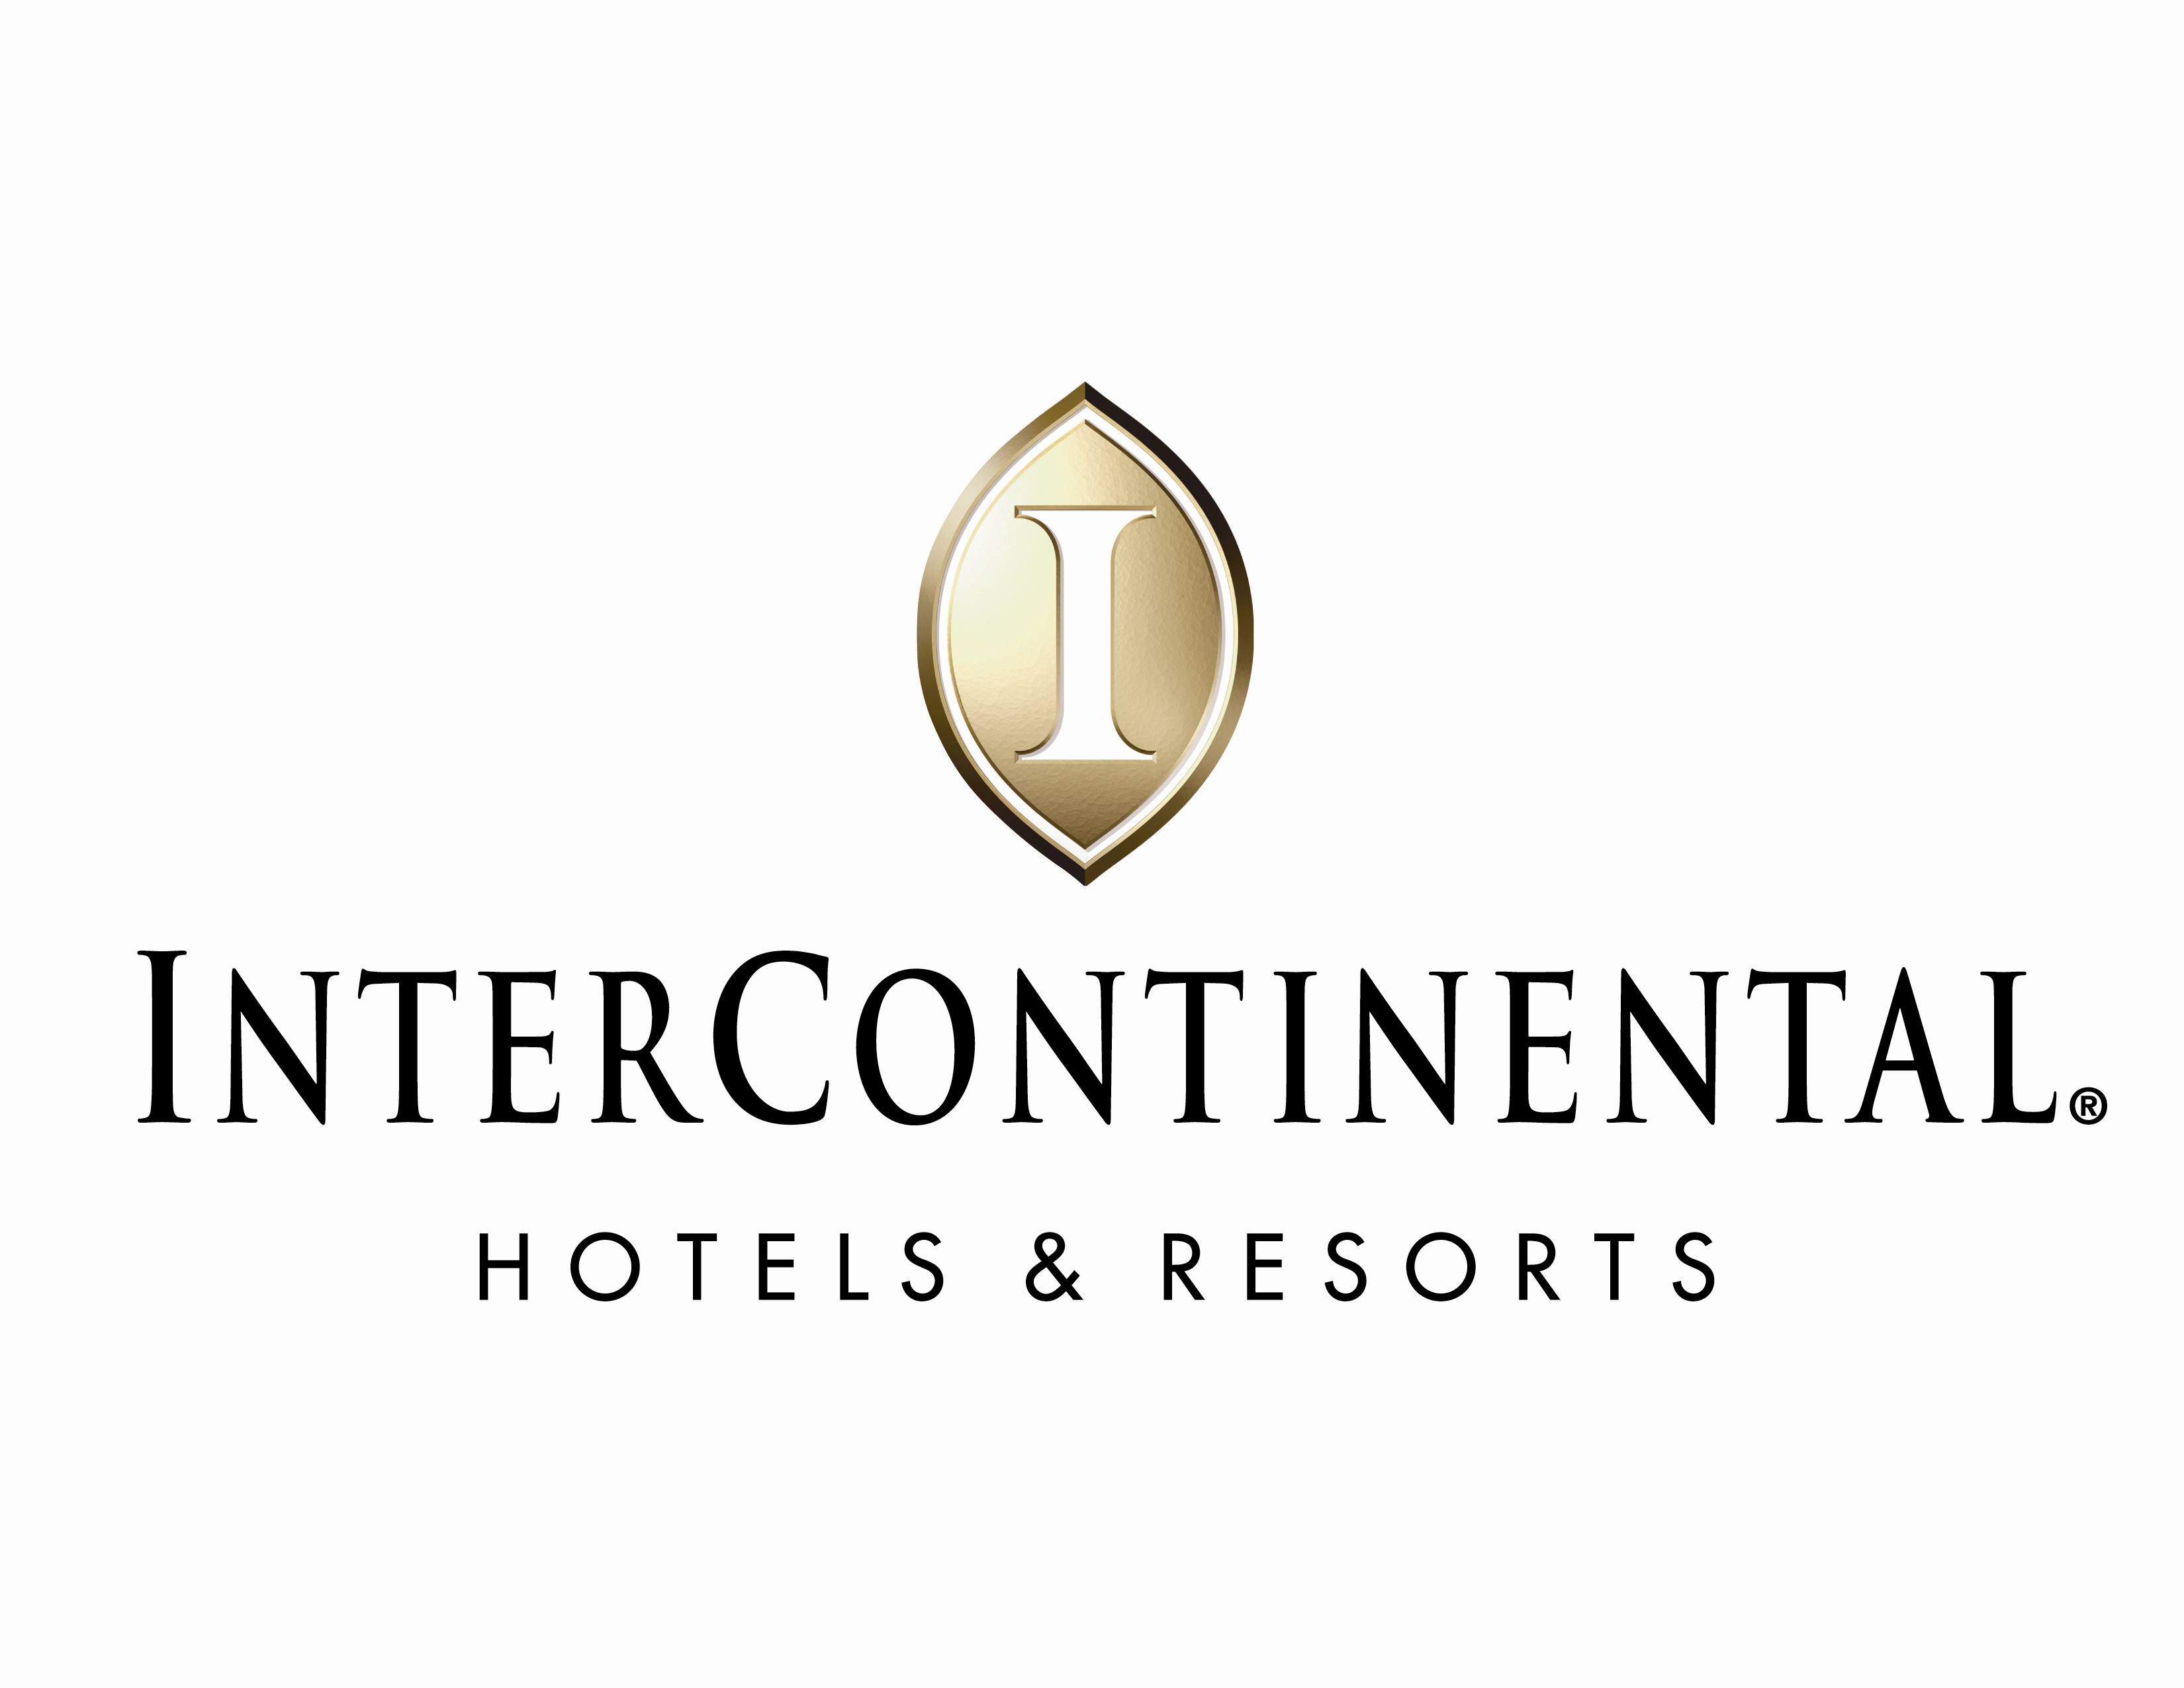 Intercontinental wikiwand for Hotel international